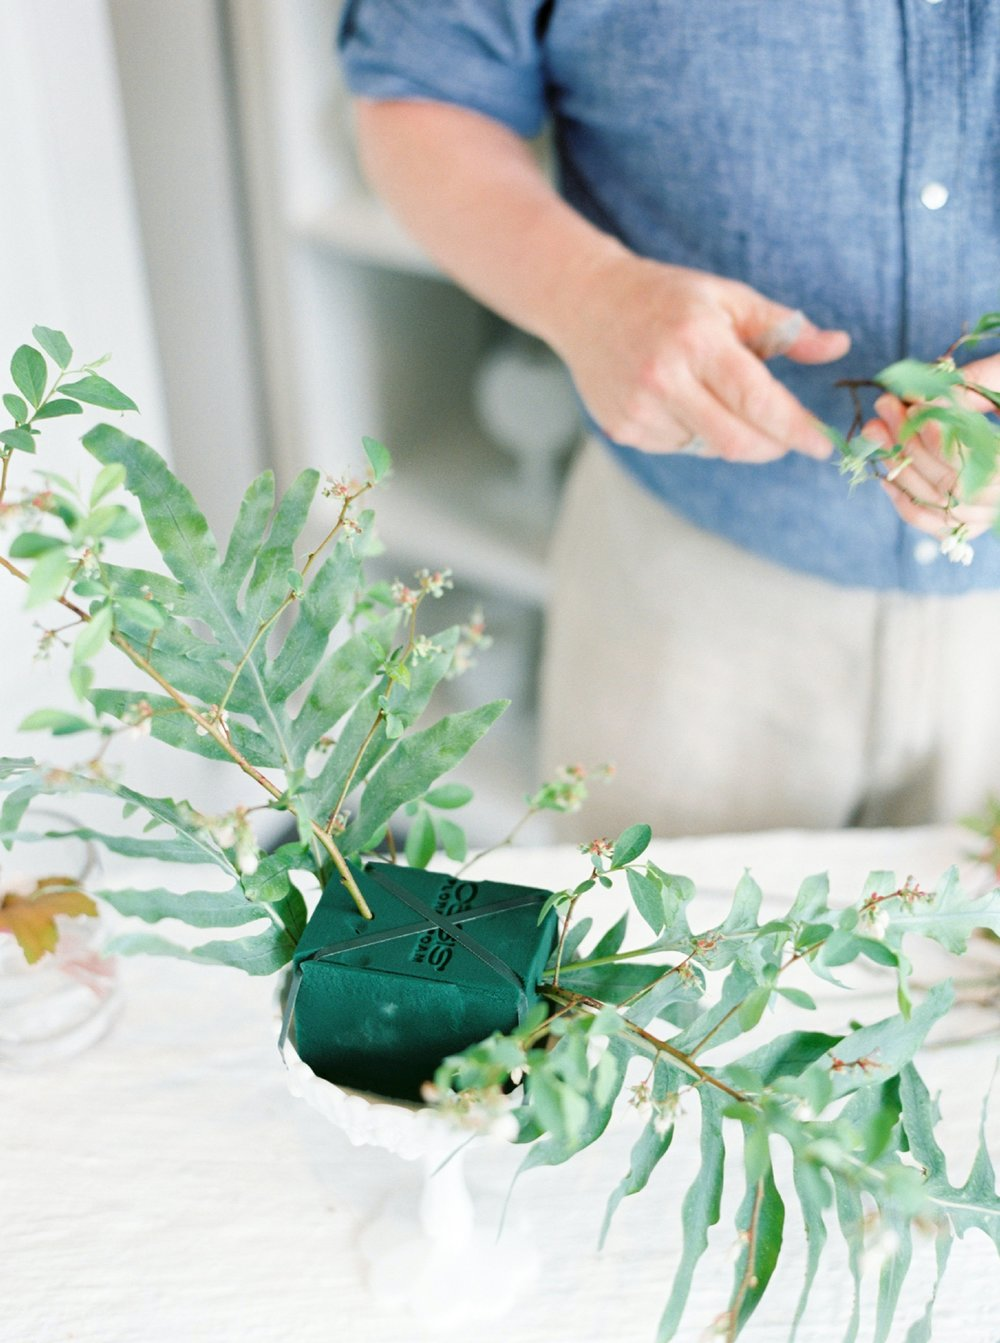 How To Make a Garden Fabulous Centerpiece Rosemary Beach Florist  Myrtie Blue  Shannon Griffin_0020.jpg